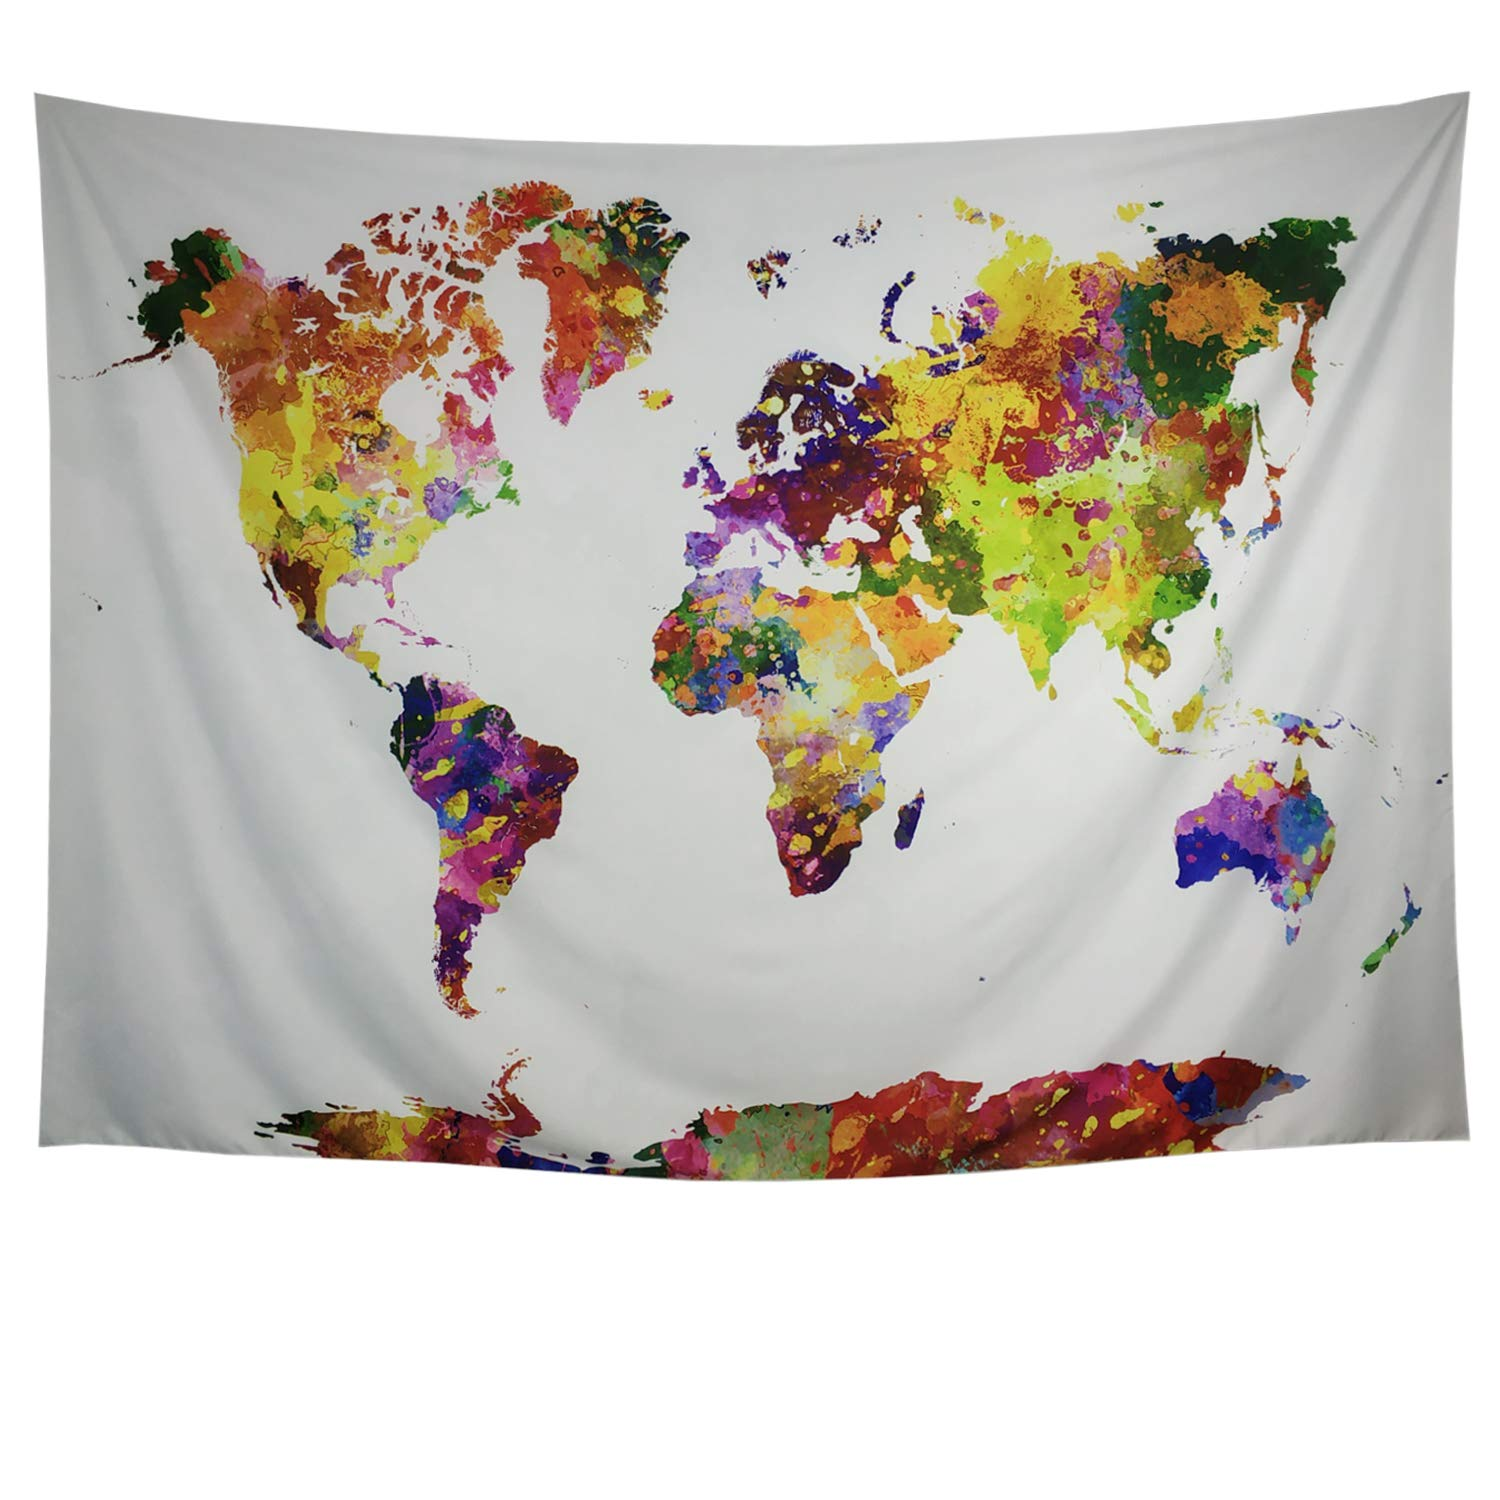 Generleo Flower World Map Tapestry Floral Watercolor Map Tapestry Colorful Abstract Painting Tapestry Wall Hanging College Student Dorm Decor